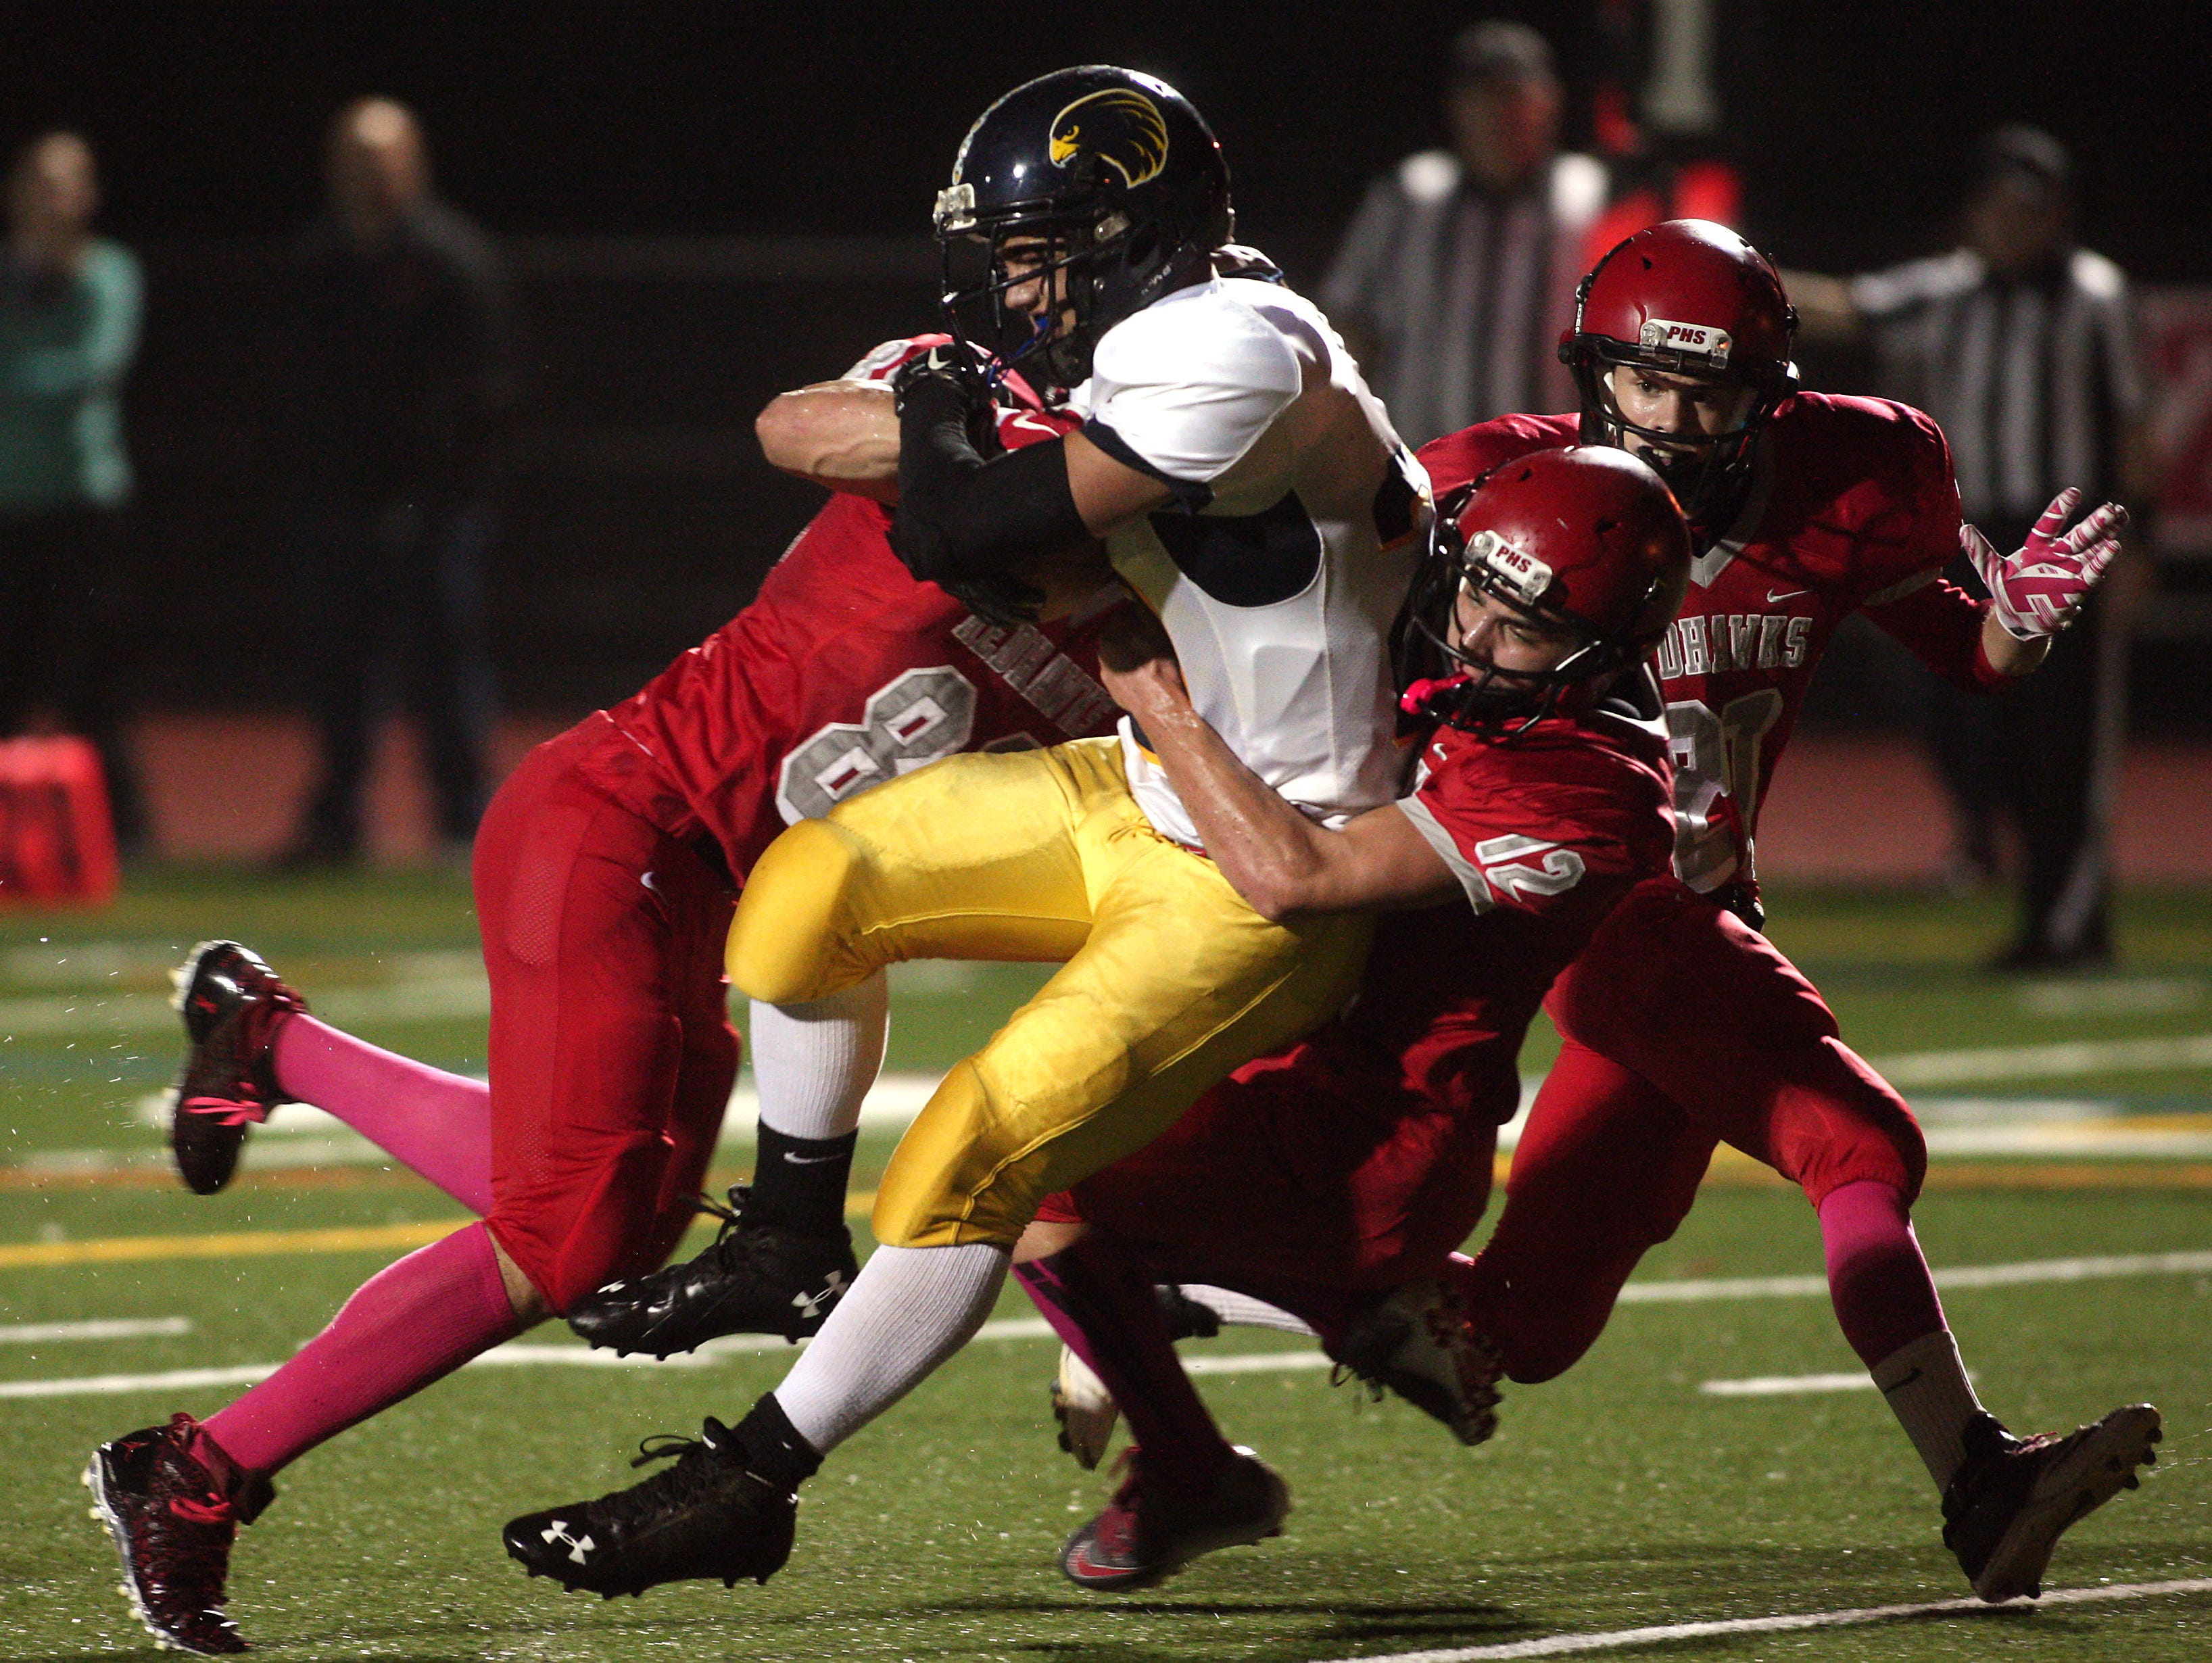 Jefferson running back Connor Brown flies into the end zone for a first half touchdown vs Parsippany in a Friday night football matchup. October 9, 2015, Parsippany, NJ.